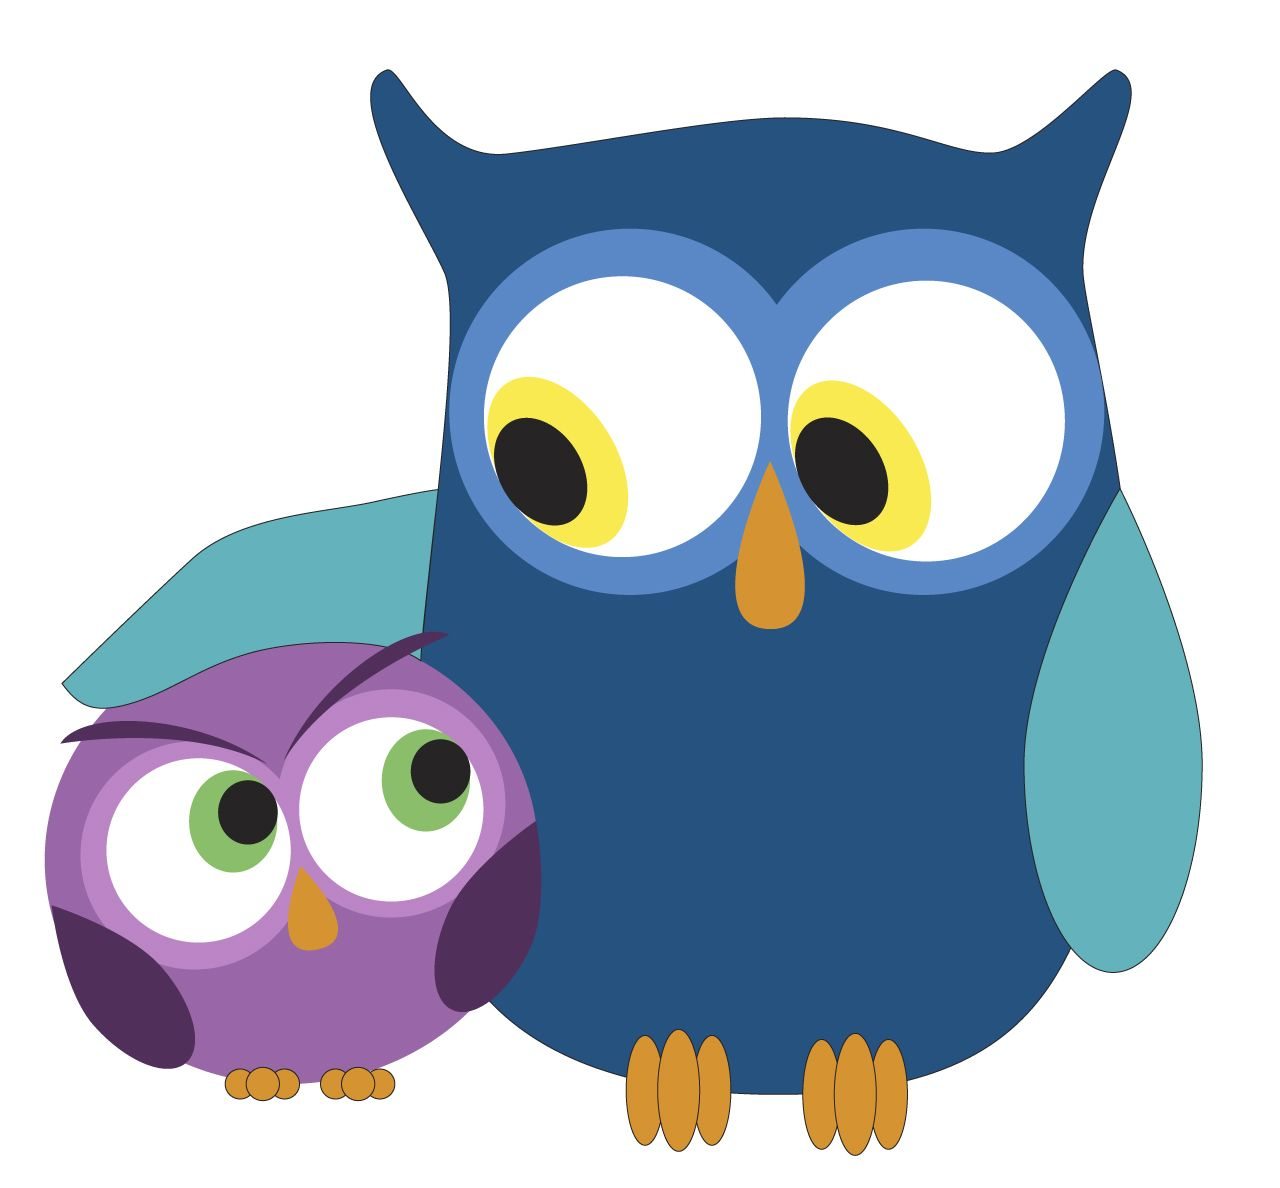 Day protect the owlets. Owl clip art owlet vector transparent download